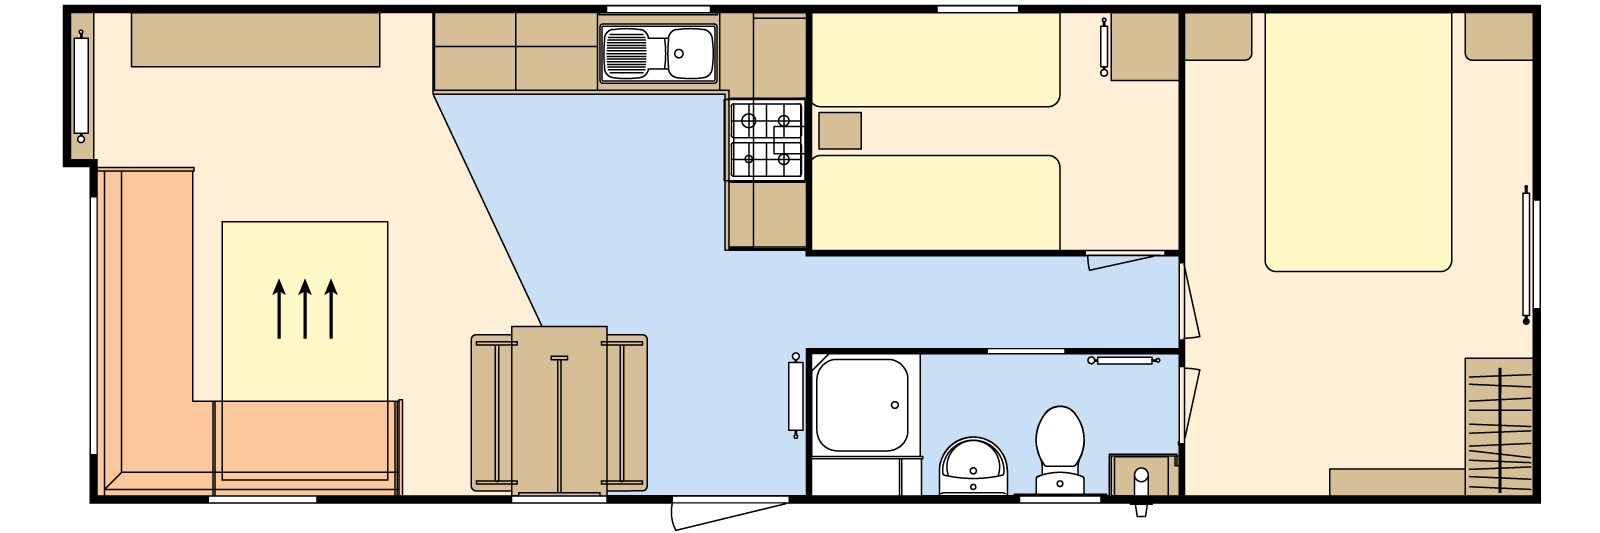 35 × 12 – 2 bedroom/6 berth